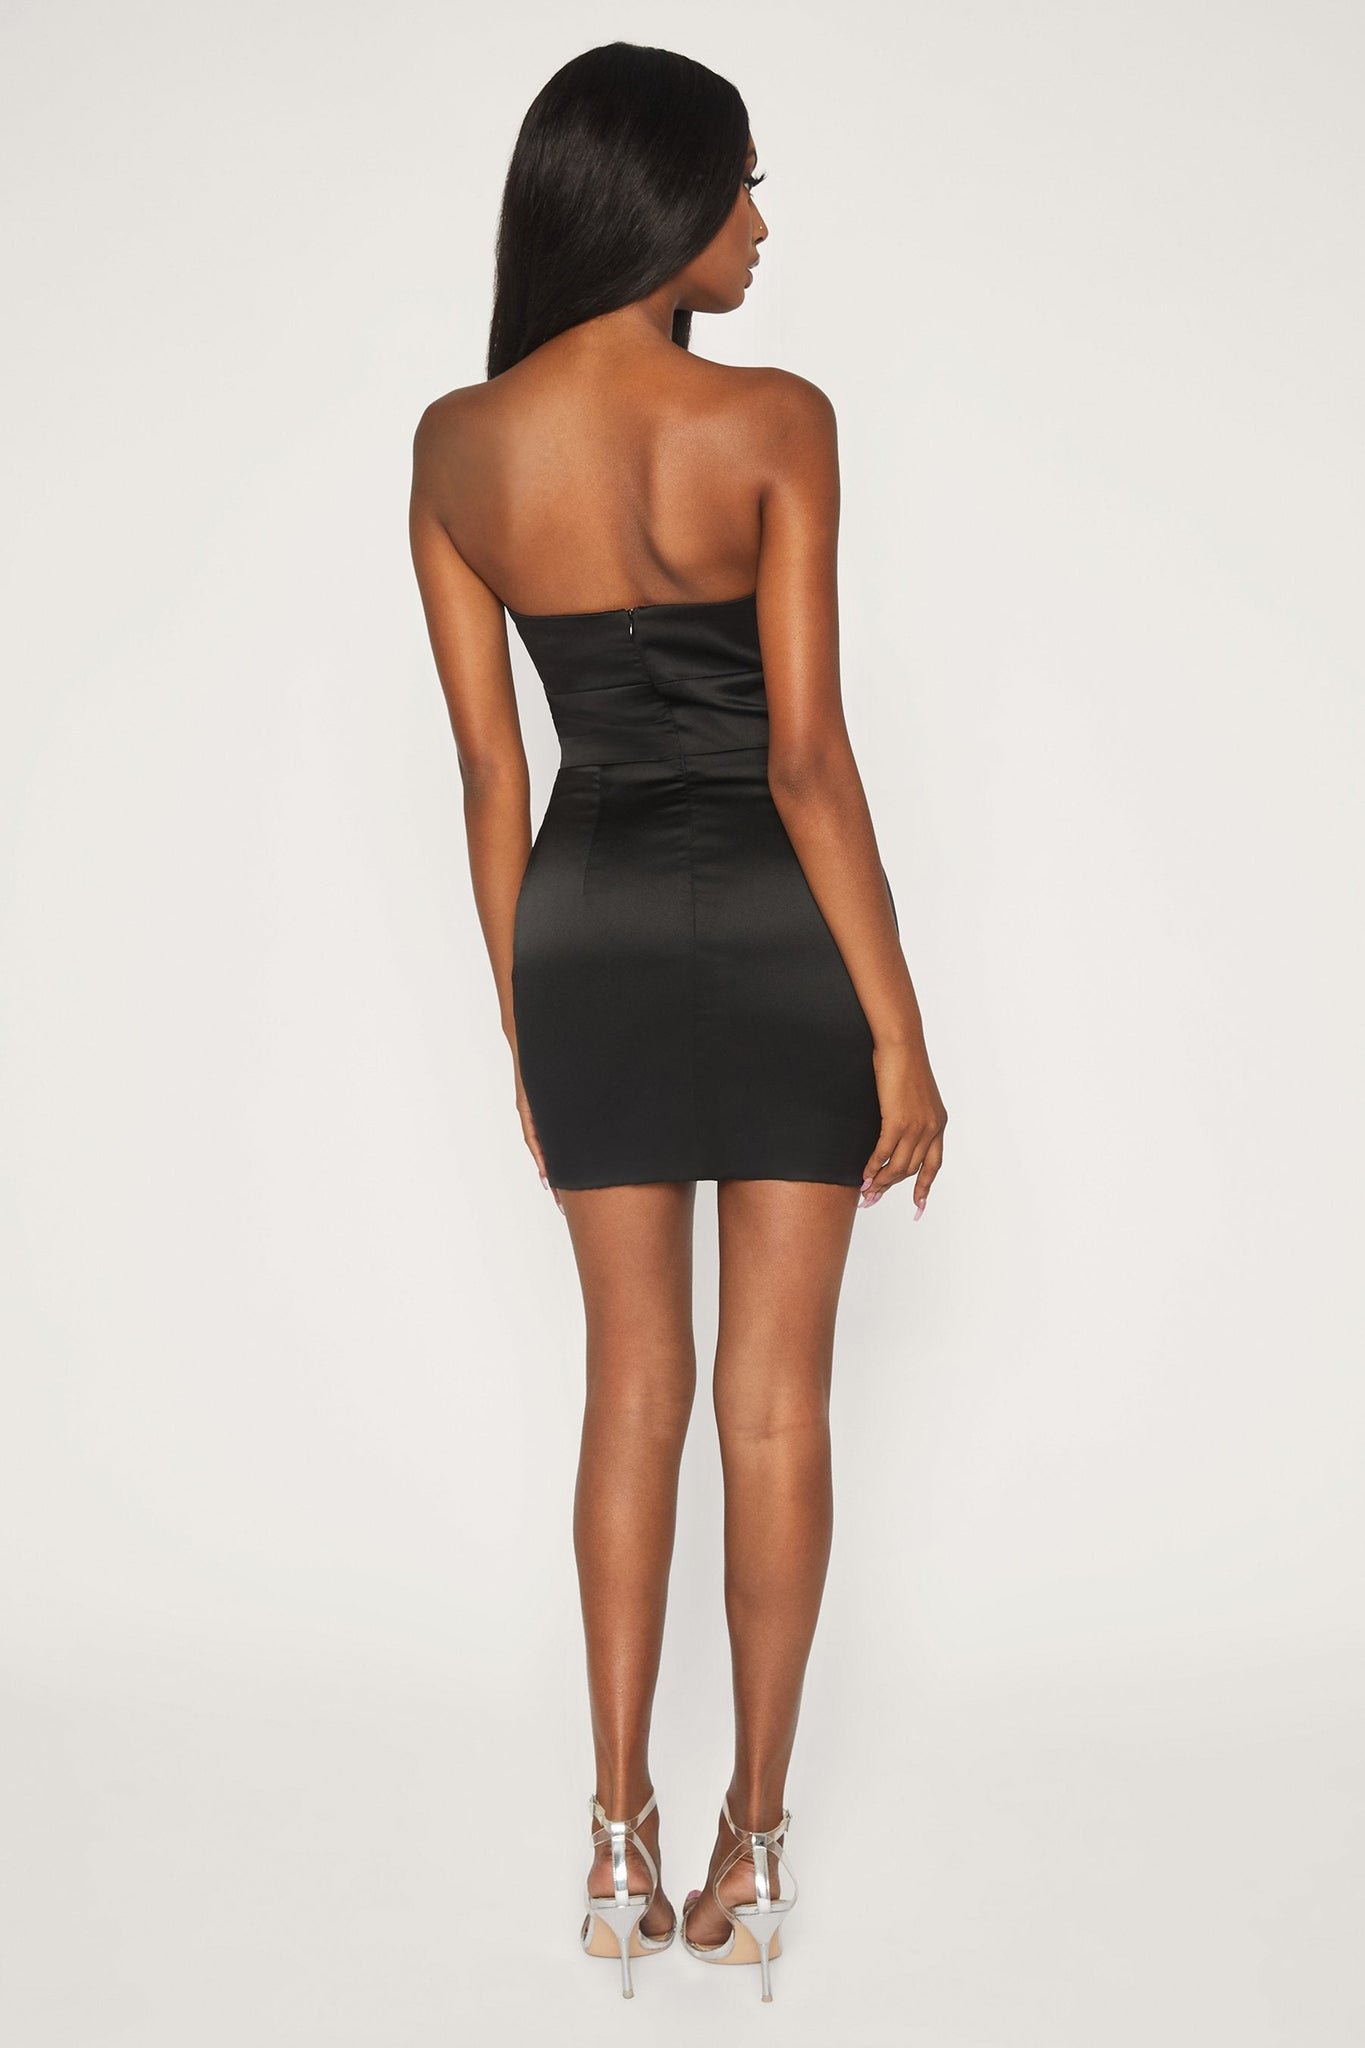 Seona Strapless Diamante Buckle Mini Dress - Black - MESHKI